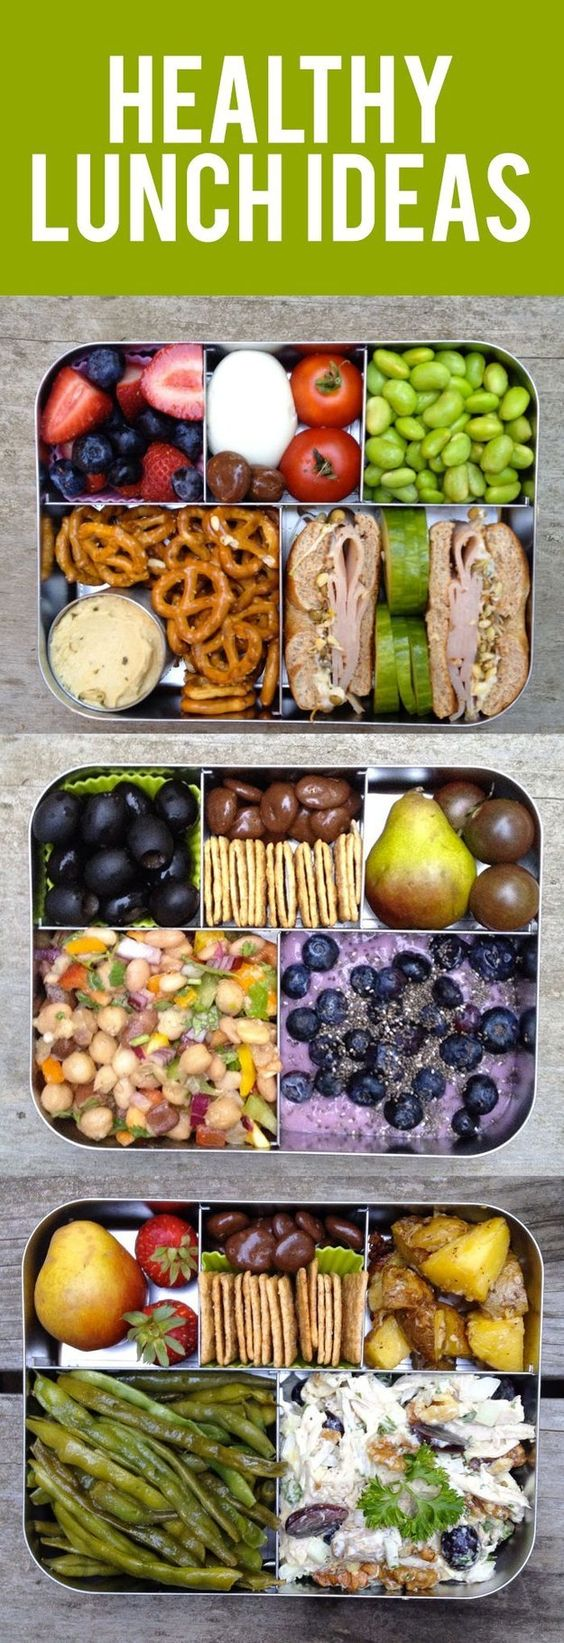 Healthy lunches in cute packaging will make work easier and more delicious. | These Are Going To Be The 16 Biggest Food Trends In 2016, According To...